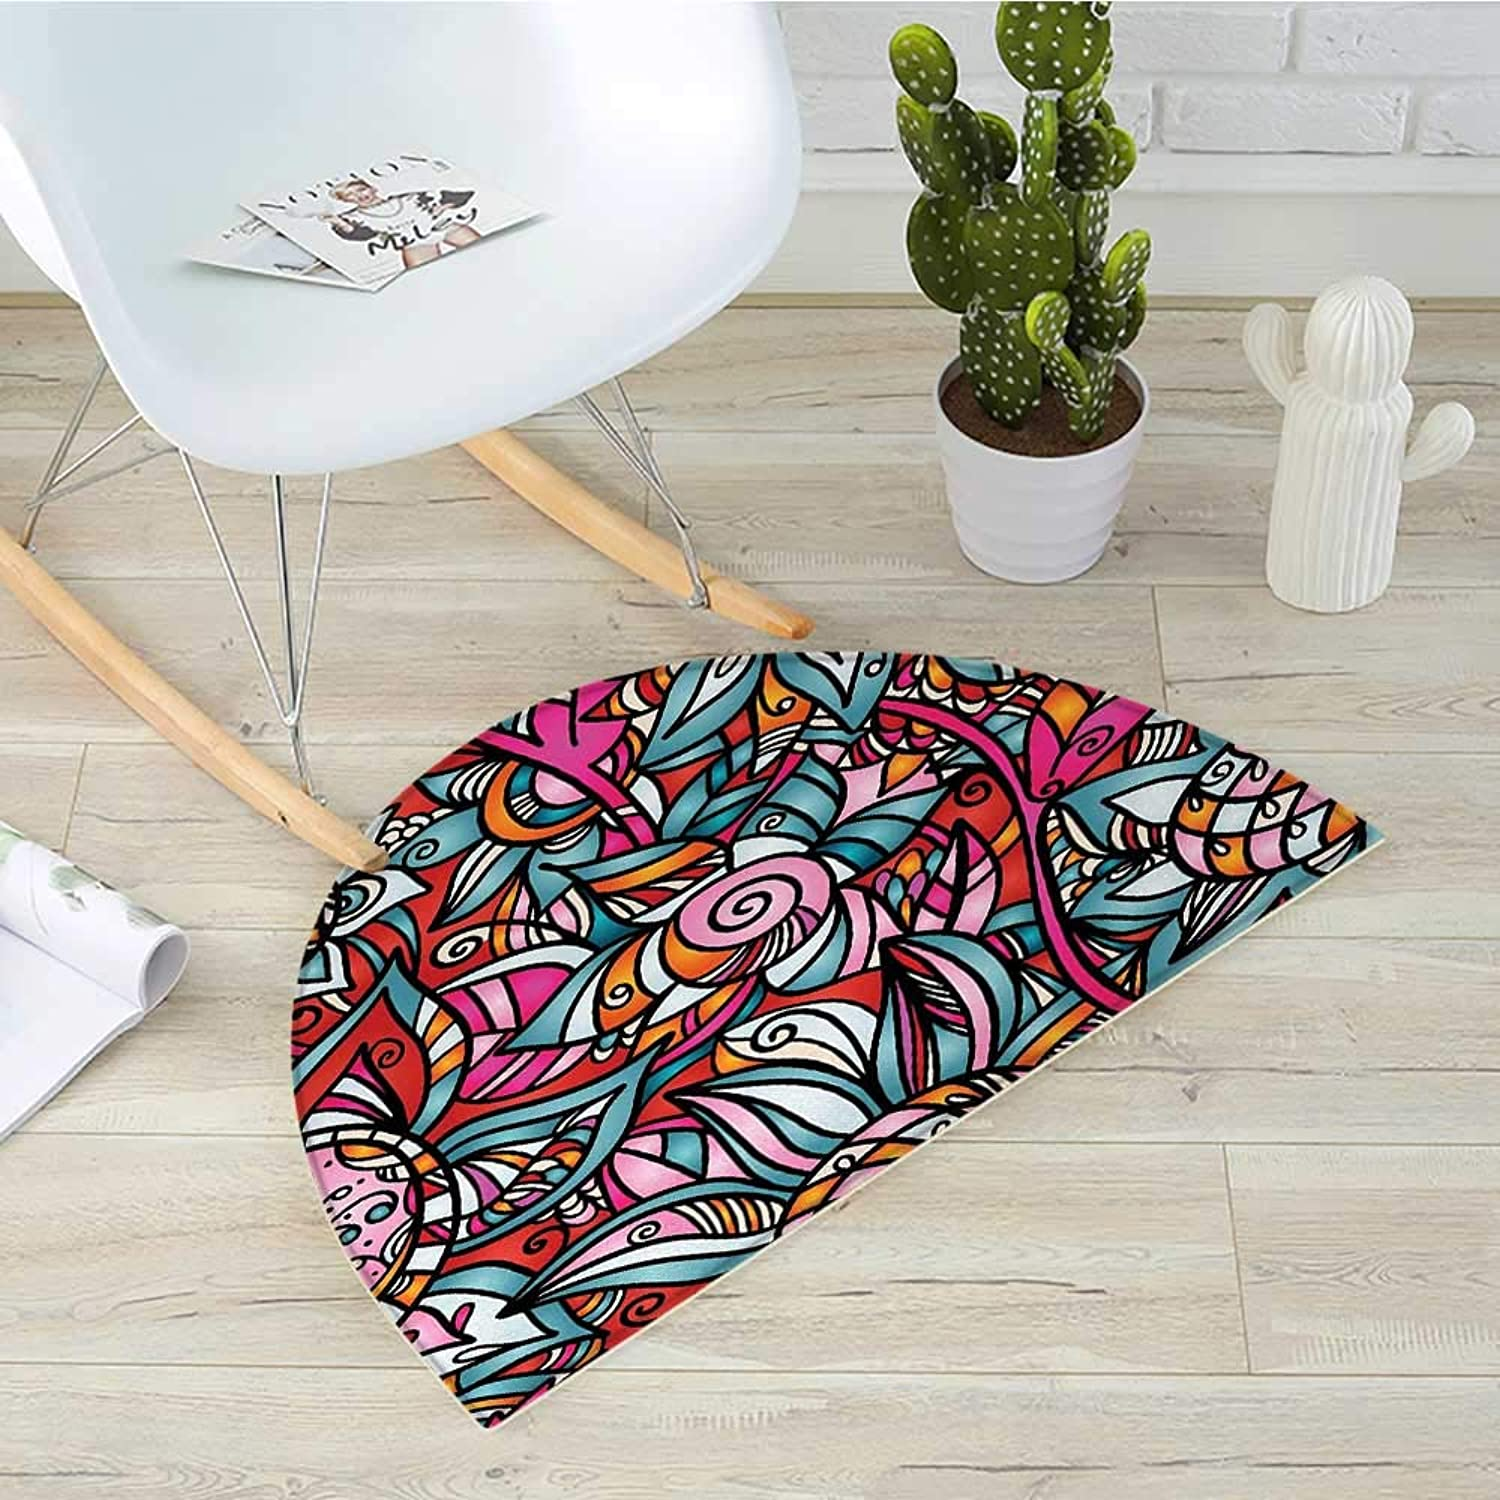 Abstract Semicircle Doormat colorful Florals Sunflower Mosaic Curl Ornaments Stained Glass Inspired Design Halfmoon doormats H 31.5  xD 47.2  Multicolor